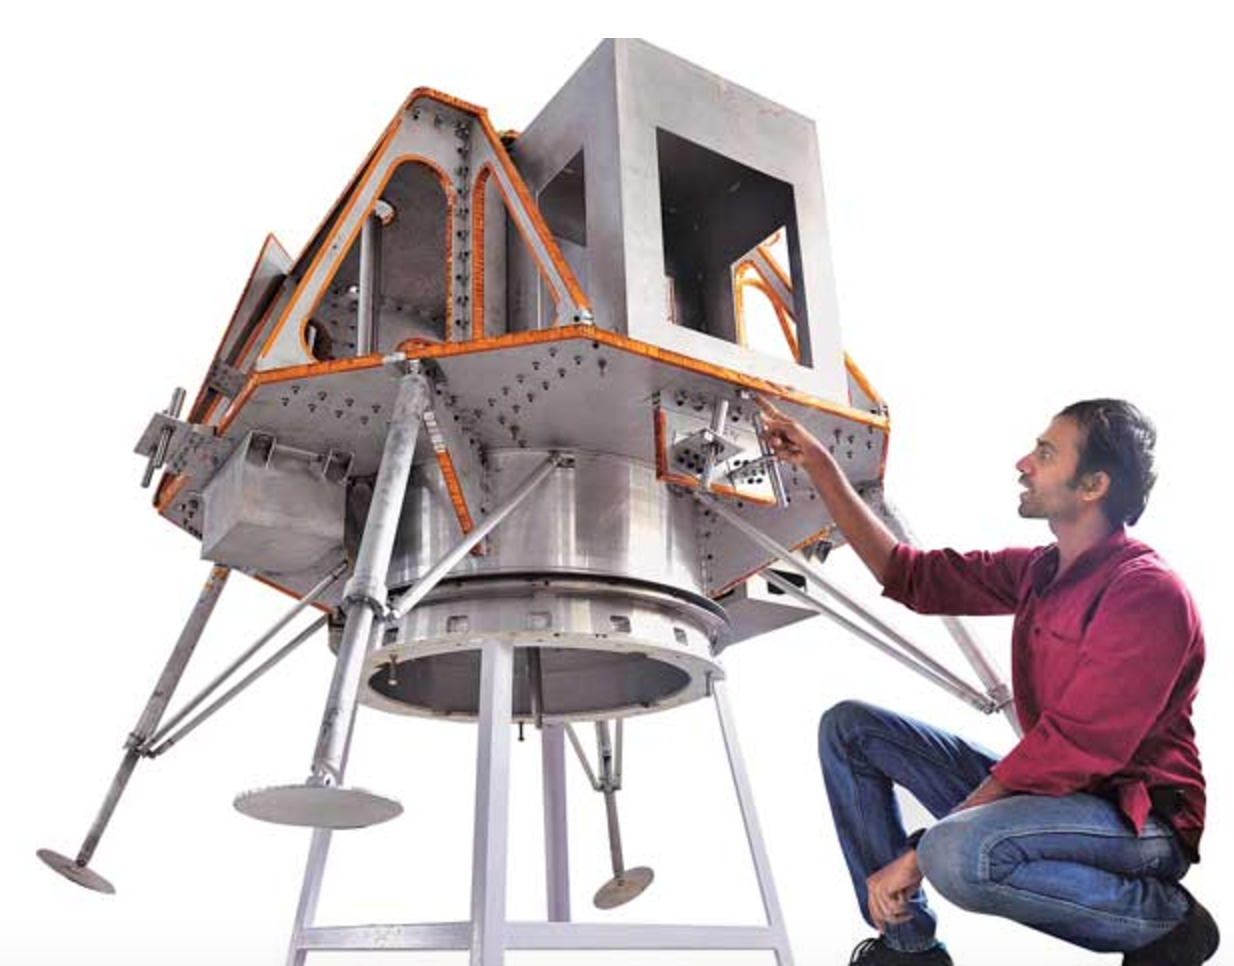 TeamIndus member Suranjan Mallick with a prototype of the lunar lander. Credit: TeamIndus